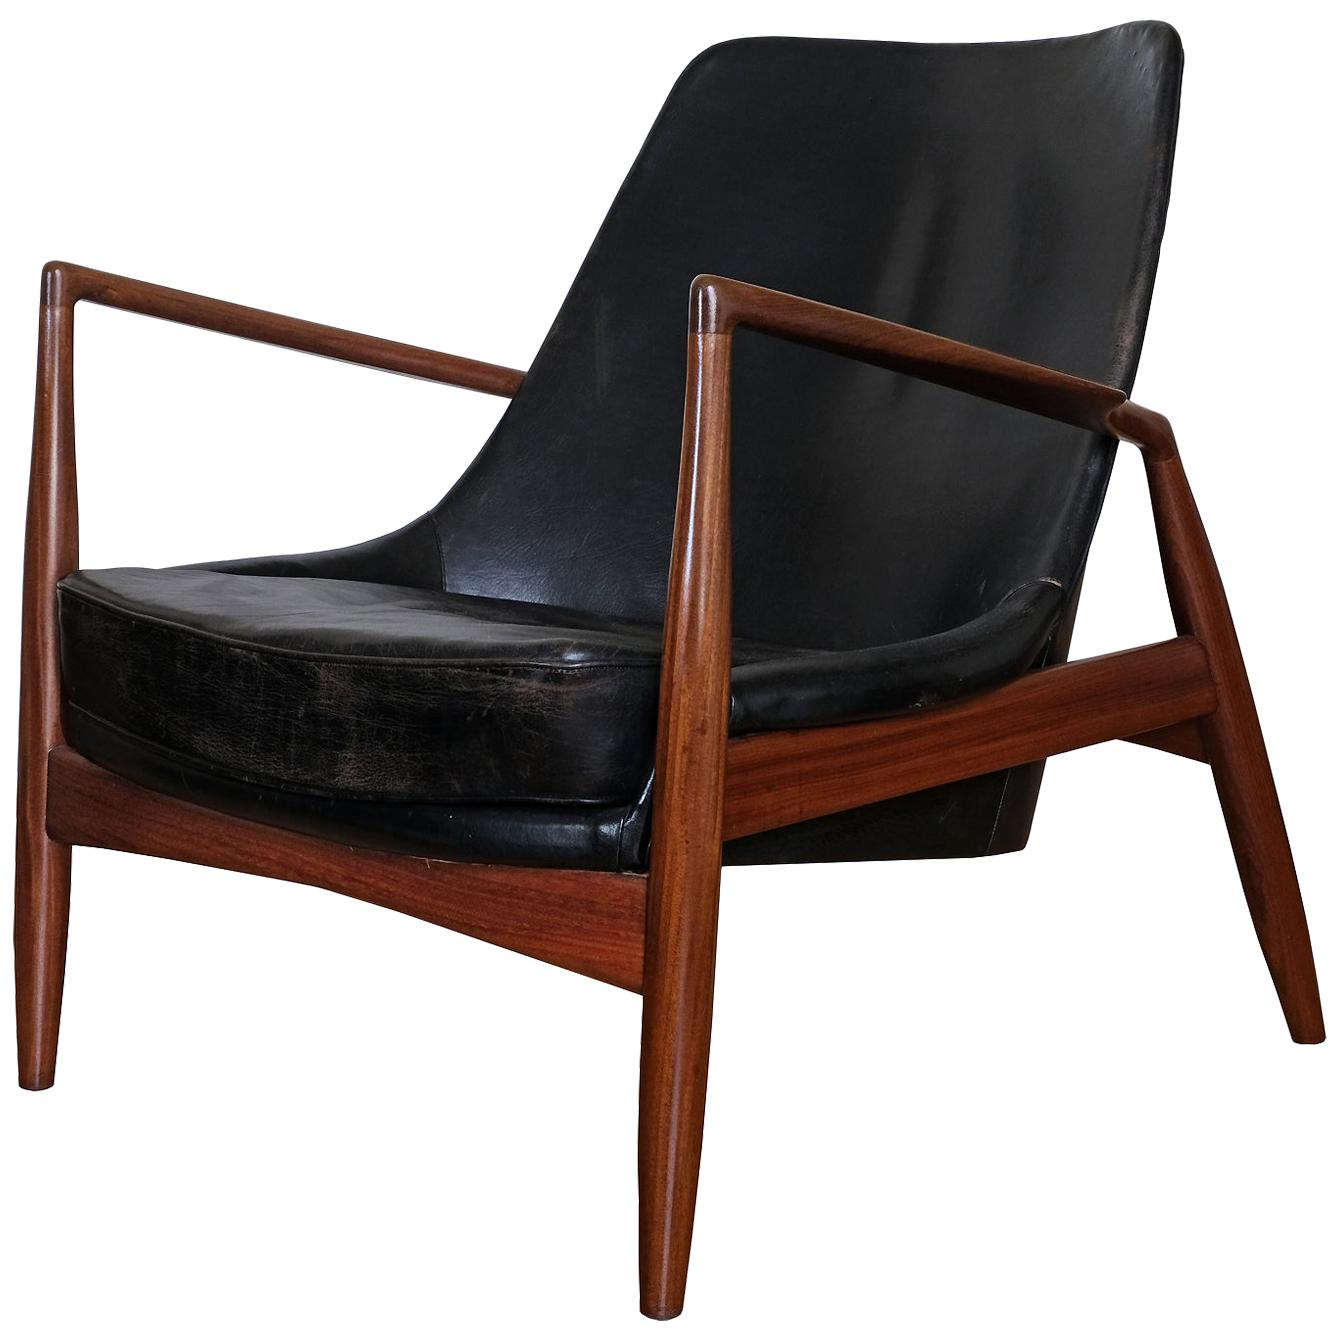 "Ib Kofod-Larsen, Lounge Armchair ""Seal"", Produced by OPE, Sweden, 1950s"